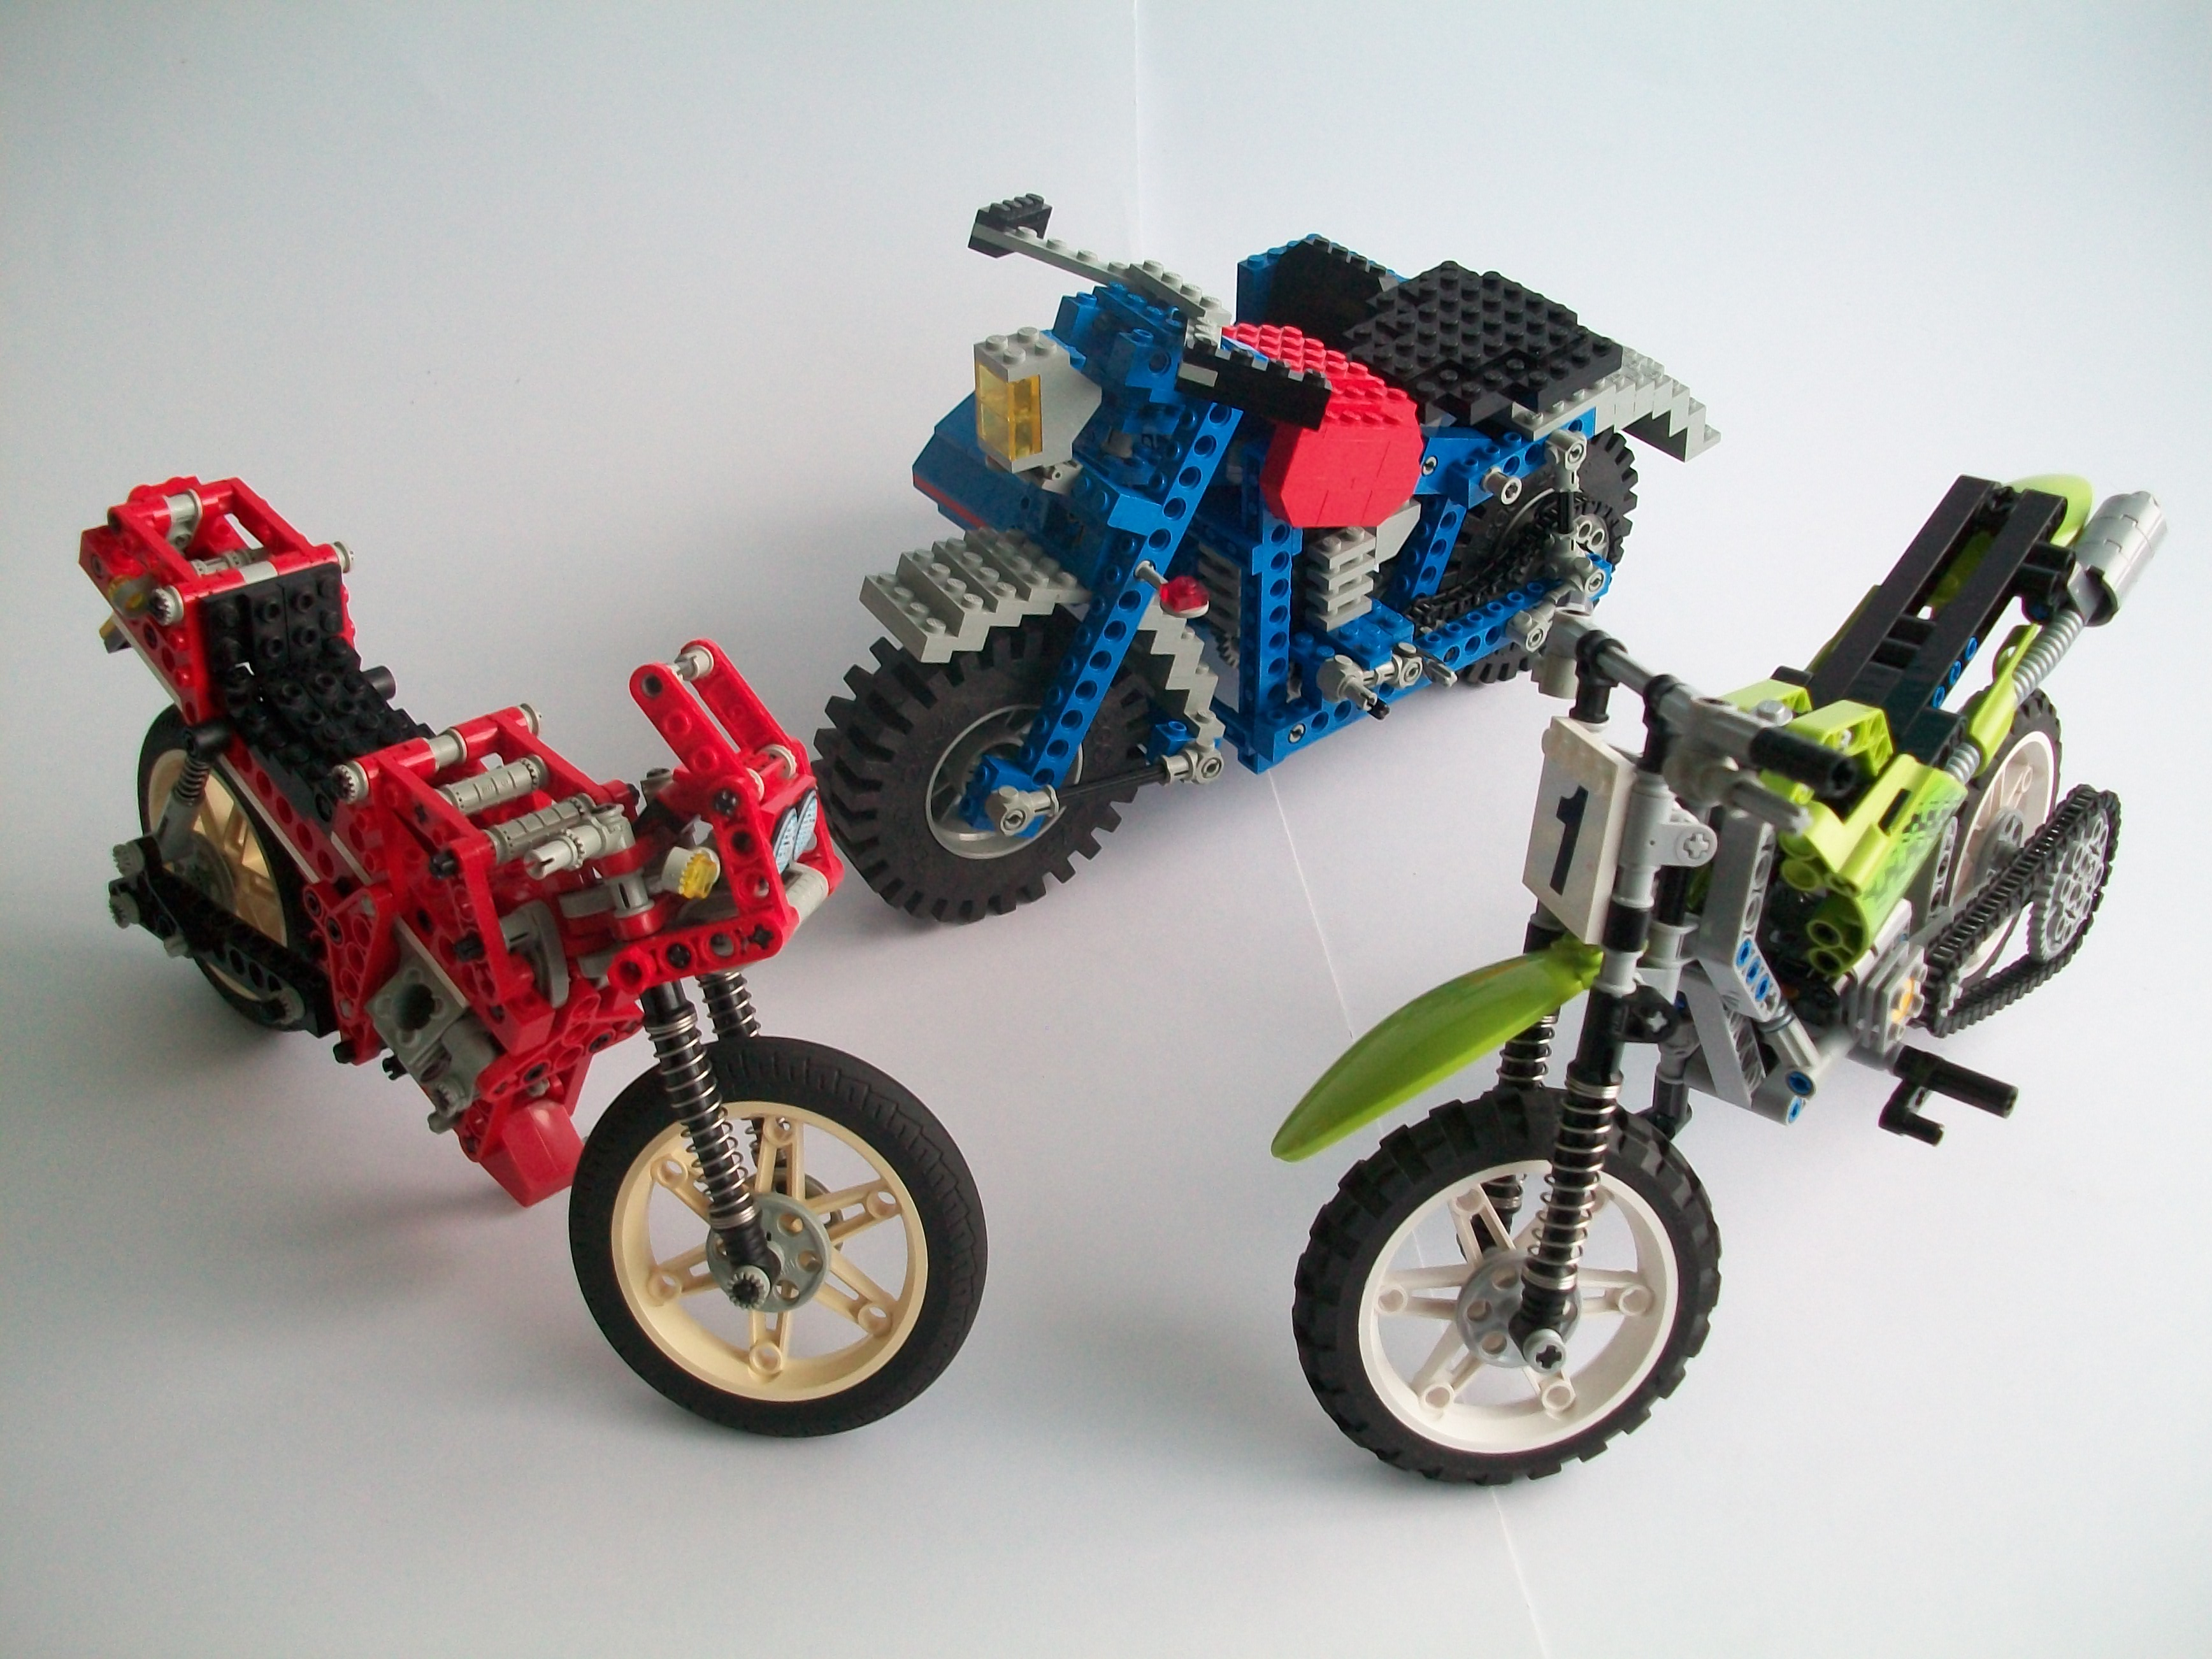 S M I D S Y The Lego Car Blog